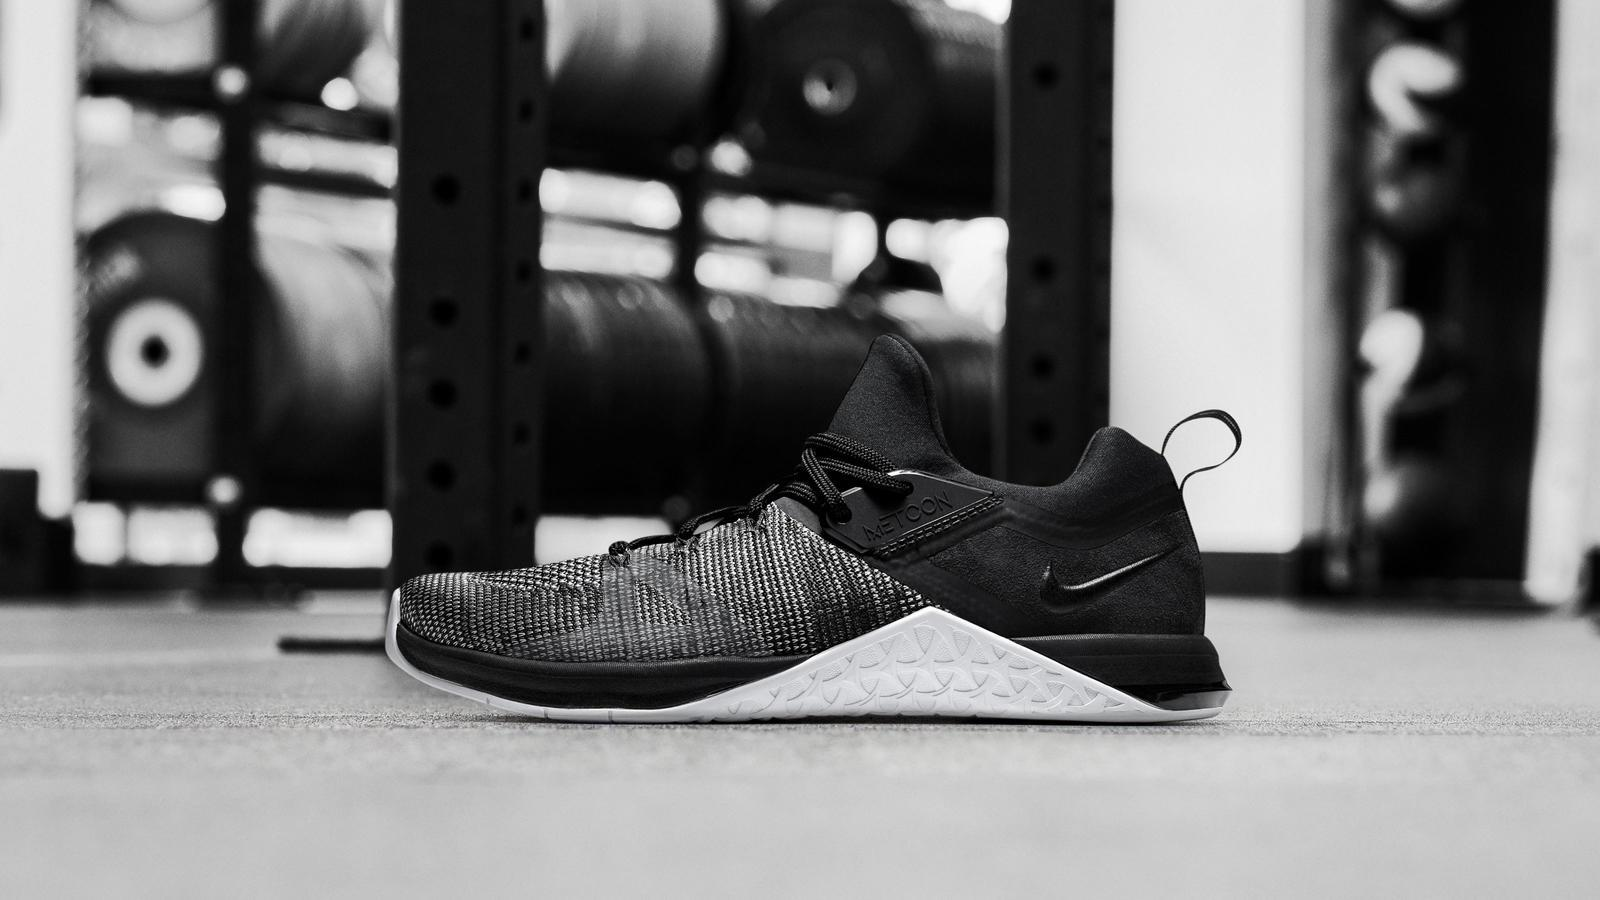 Nike reveals the Nike Metcon Fly 3